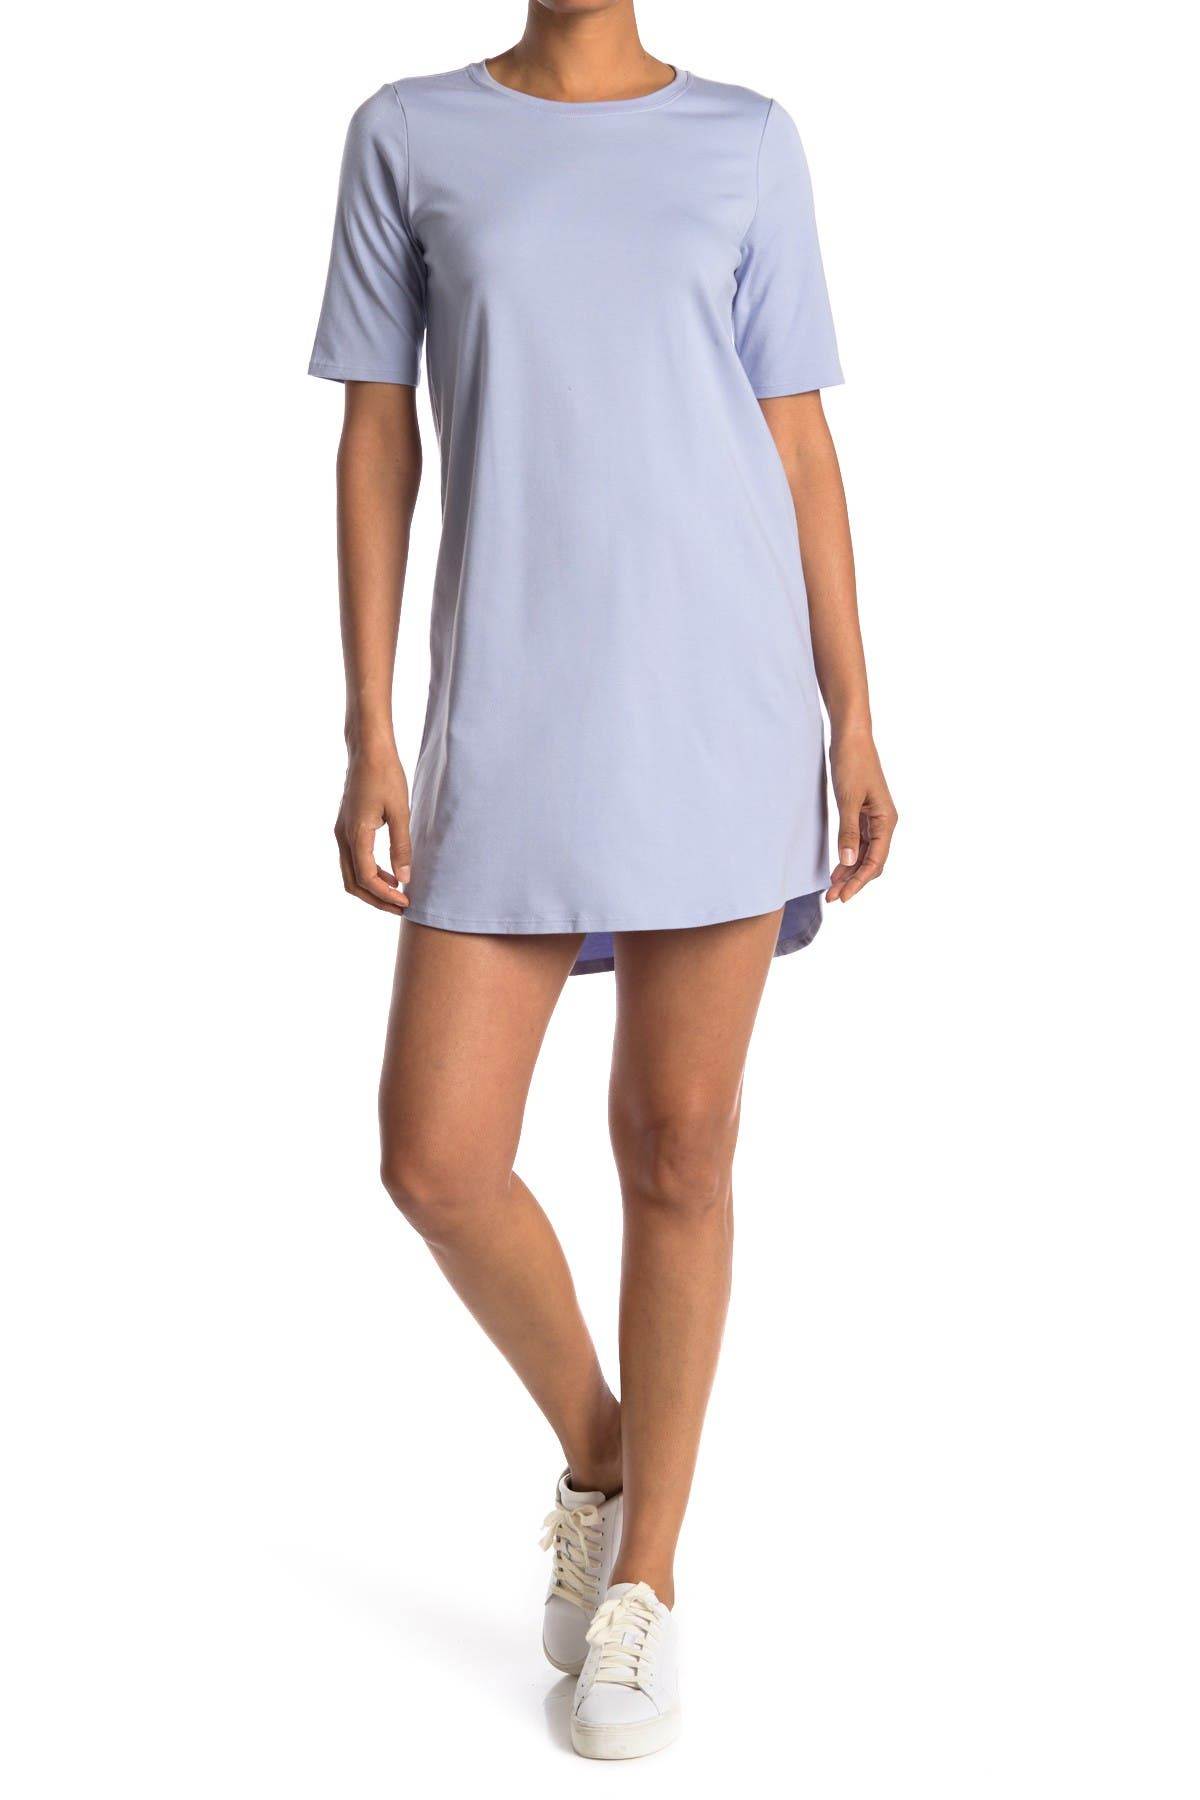 Image of Eileen Fisher Round Neck Elbow Sleeve Dress